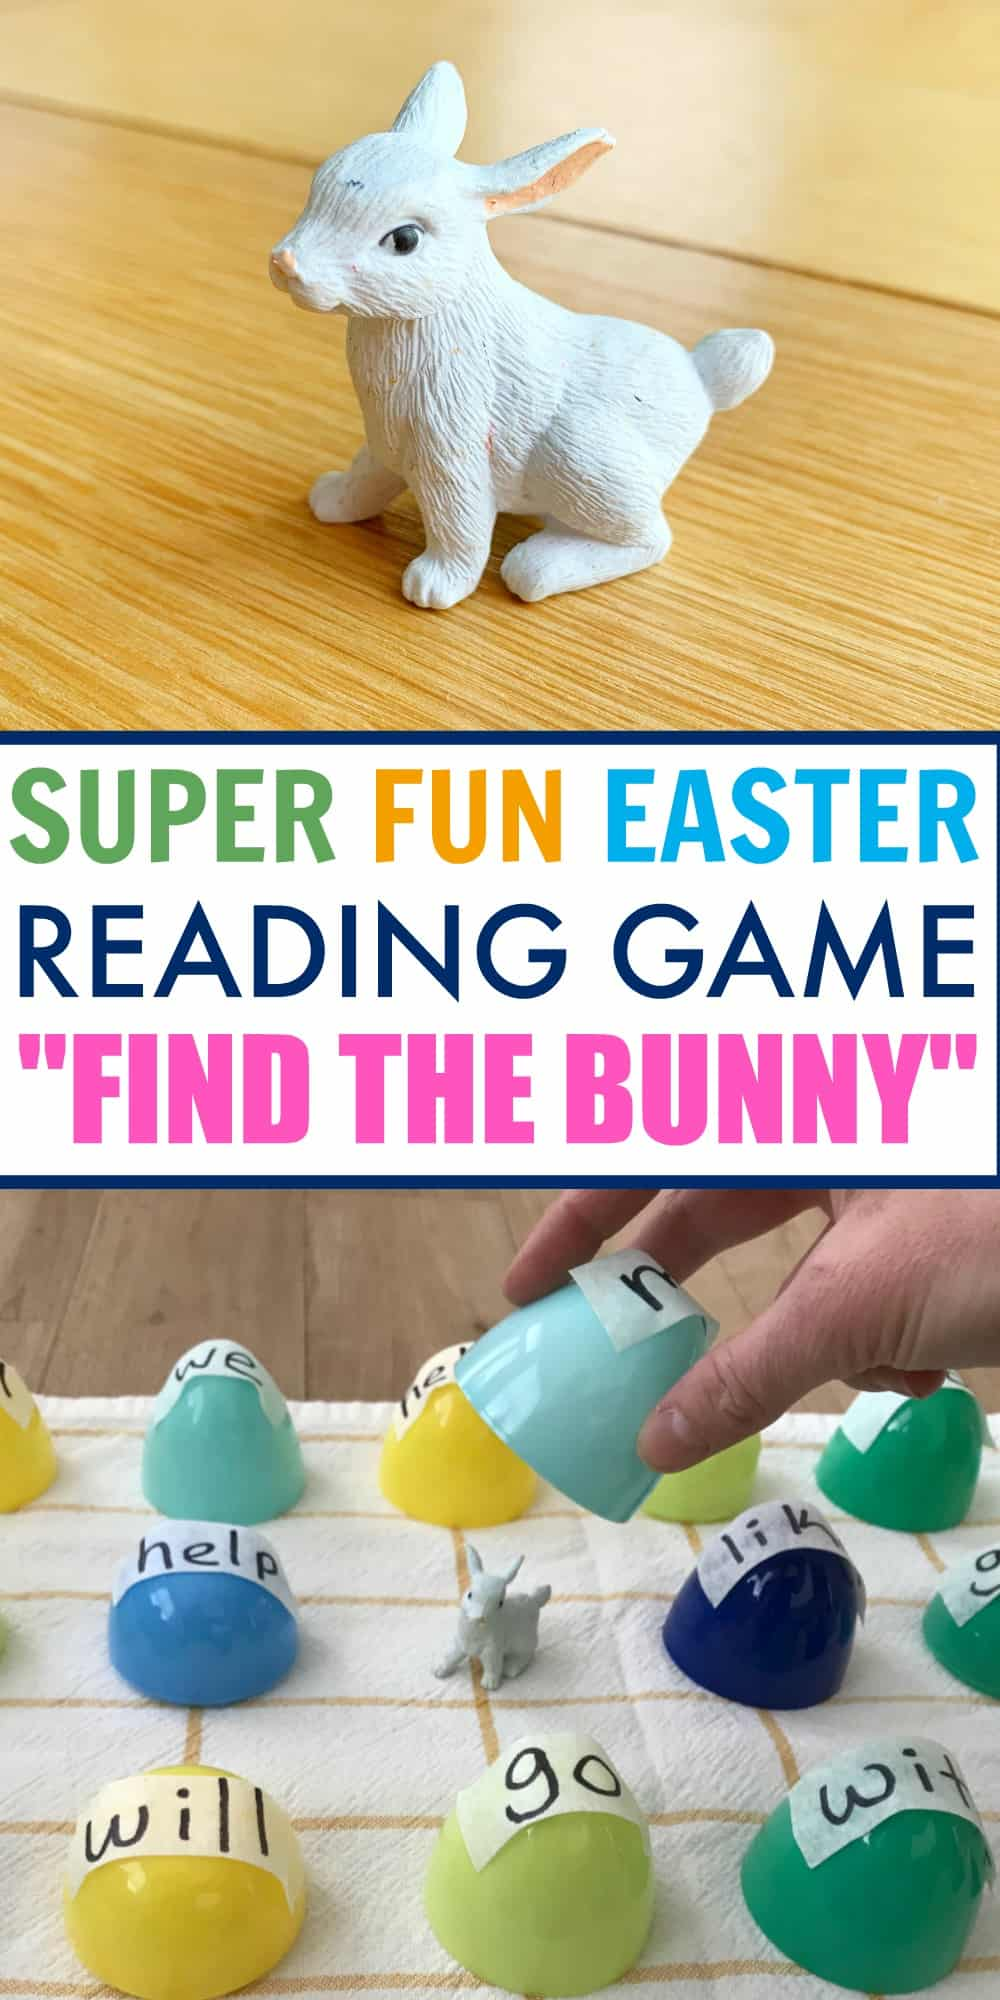 A cute white bunny being used for an Easter game